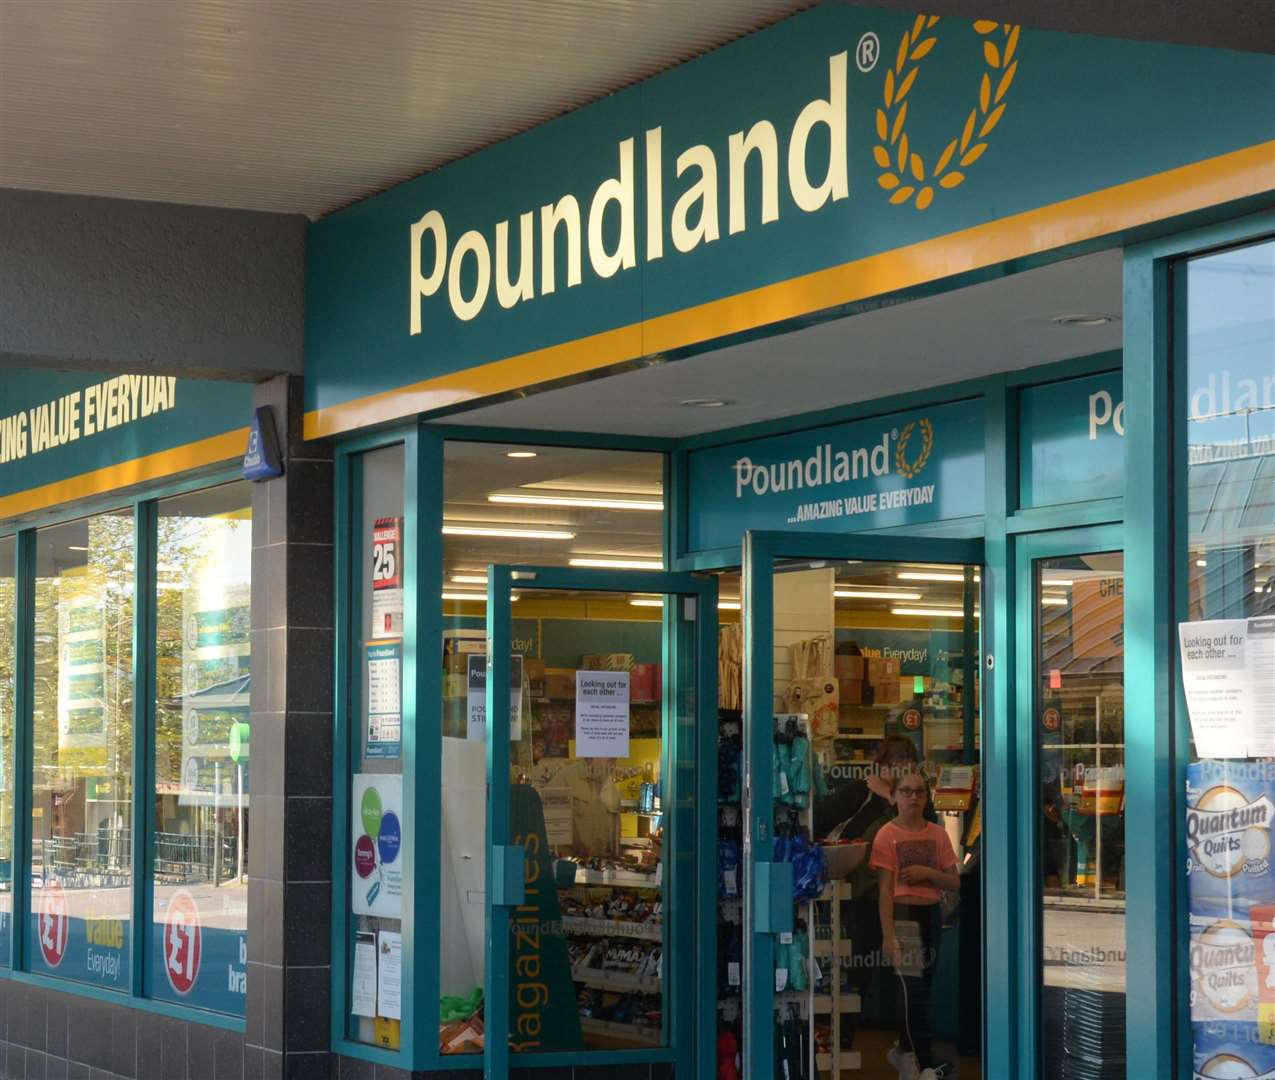 The Poundland stores in Kent will reopen next week